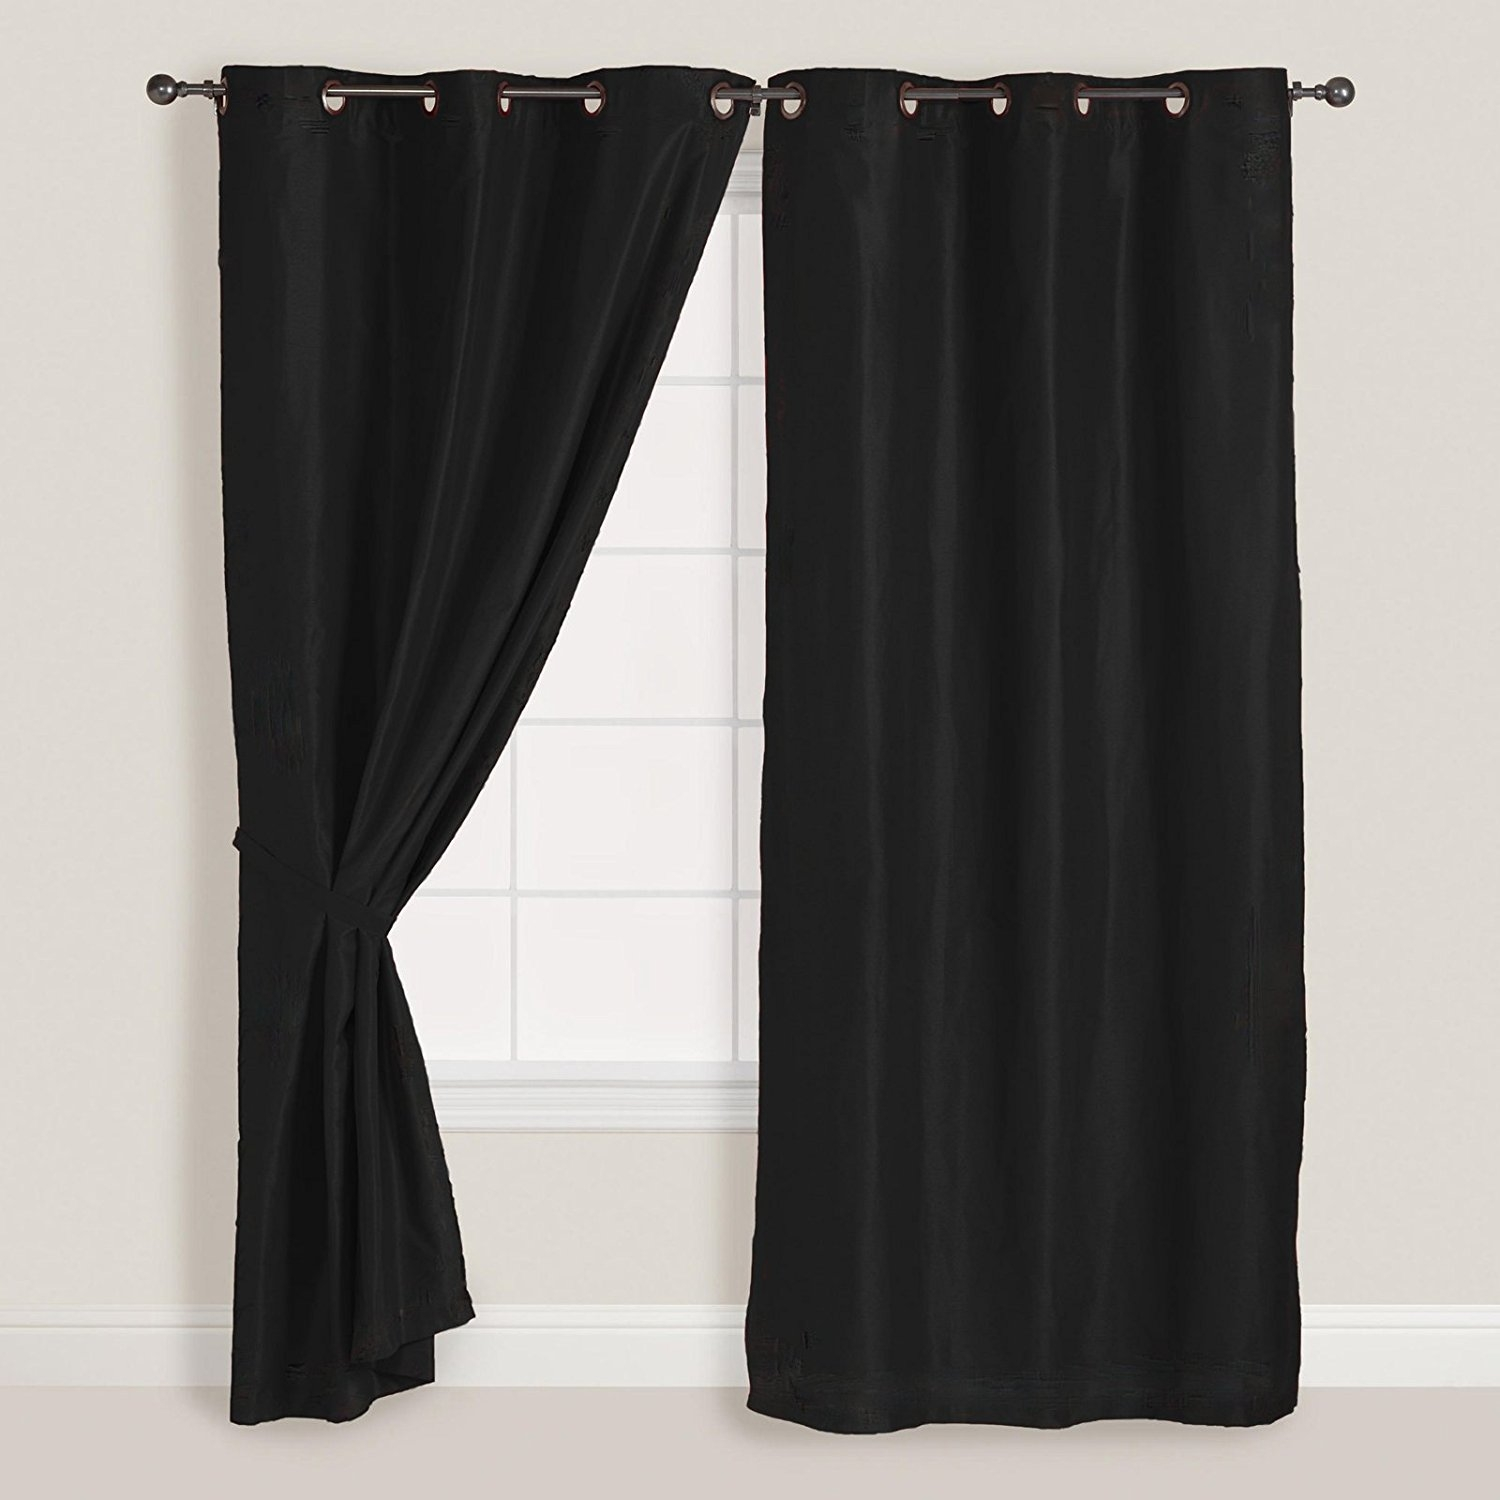 Amazon 2x Panelspair Faux Suede Metal Grommet Curtain Drape Inside Faux Suede Curtain Panels (Image 2 of 25)